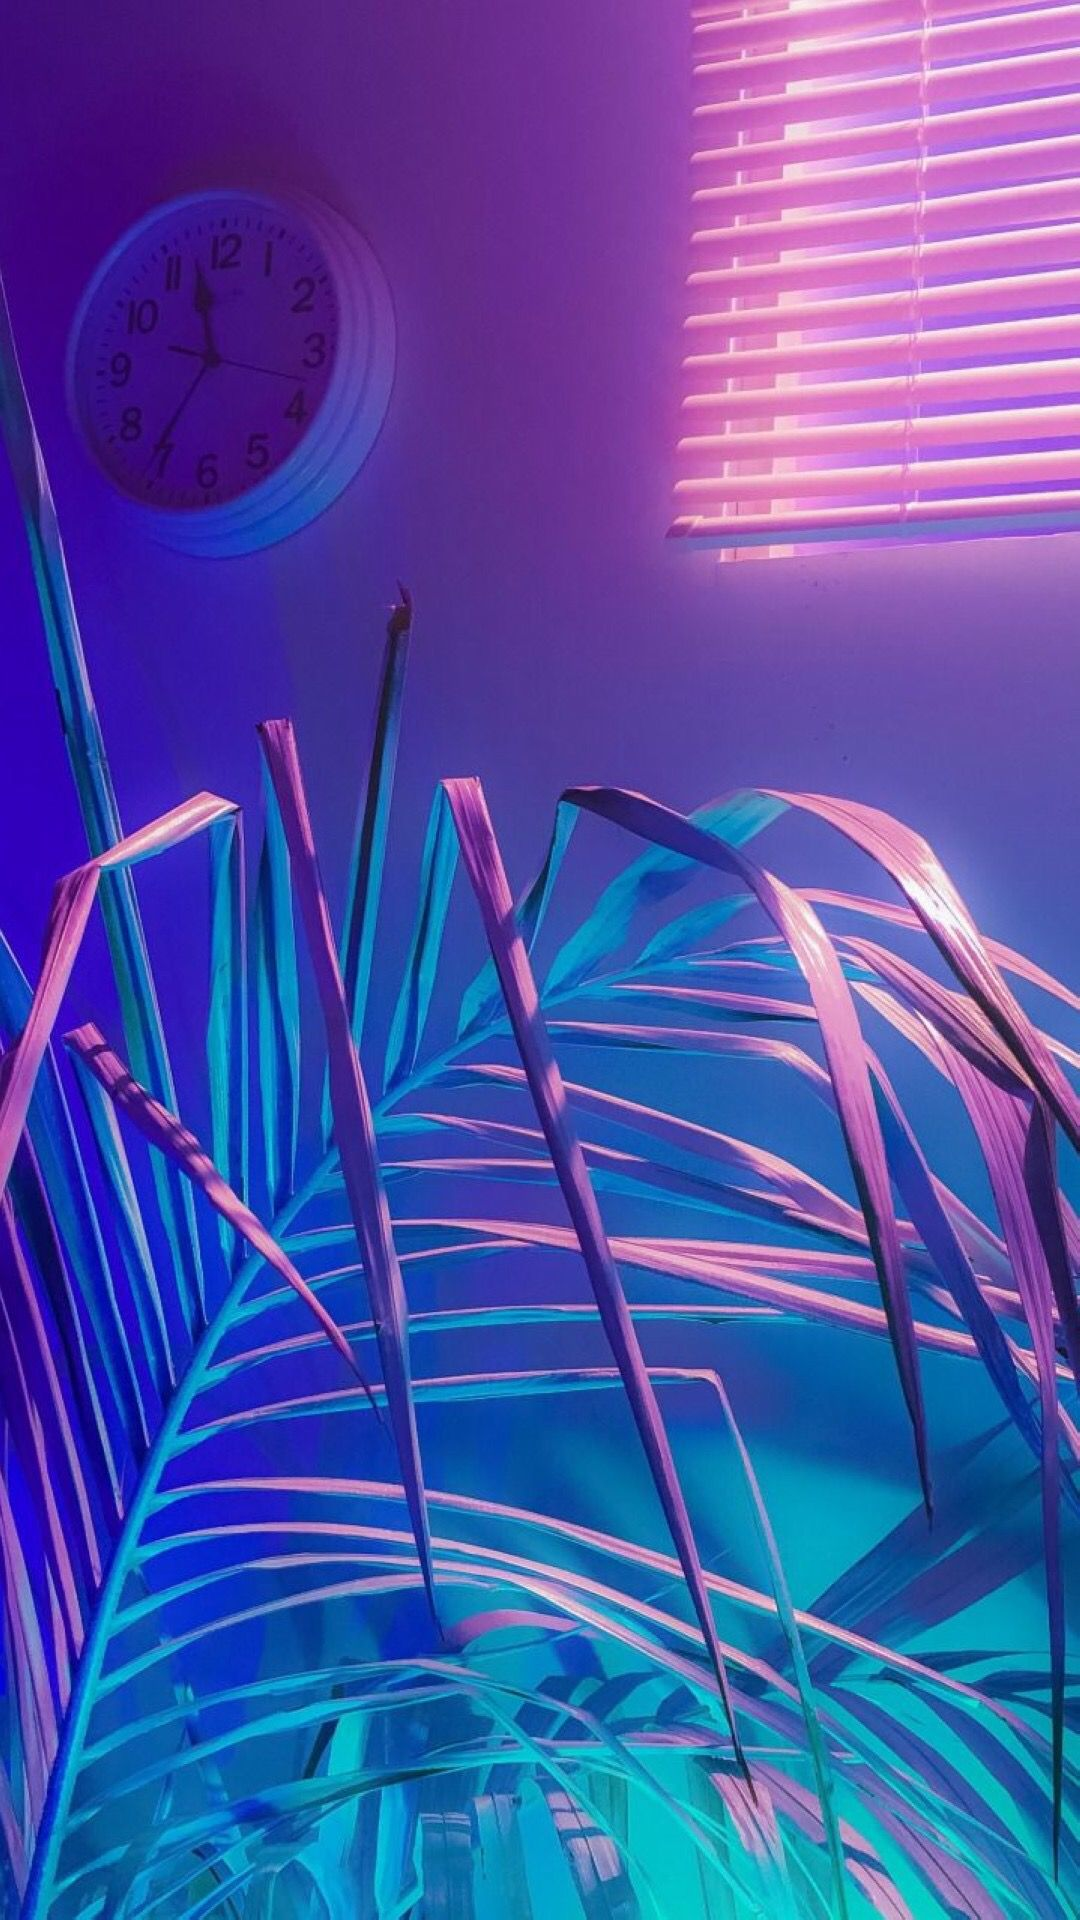 The contrast of neon blue and primary yellow feels extreme: Pin by Lisa on aesthetics | Neon aesthetic, Vaporwave ...